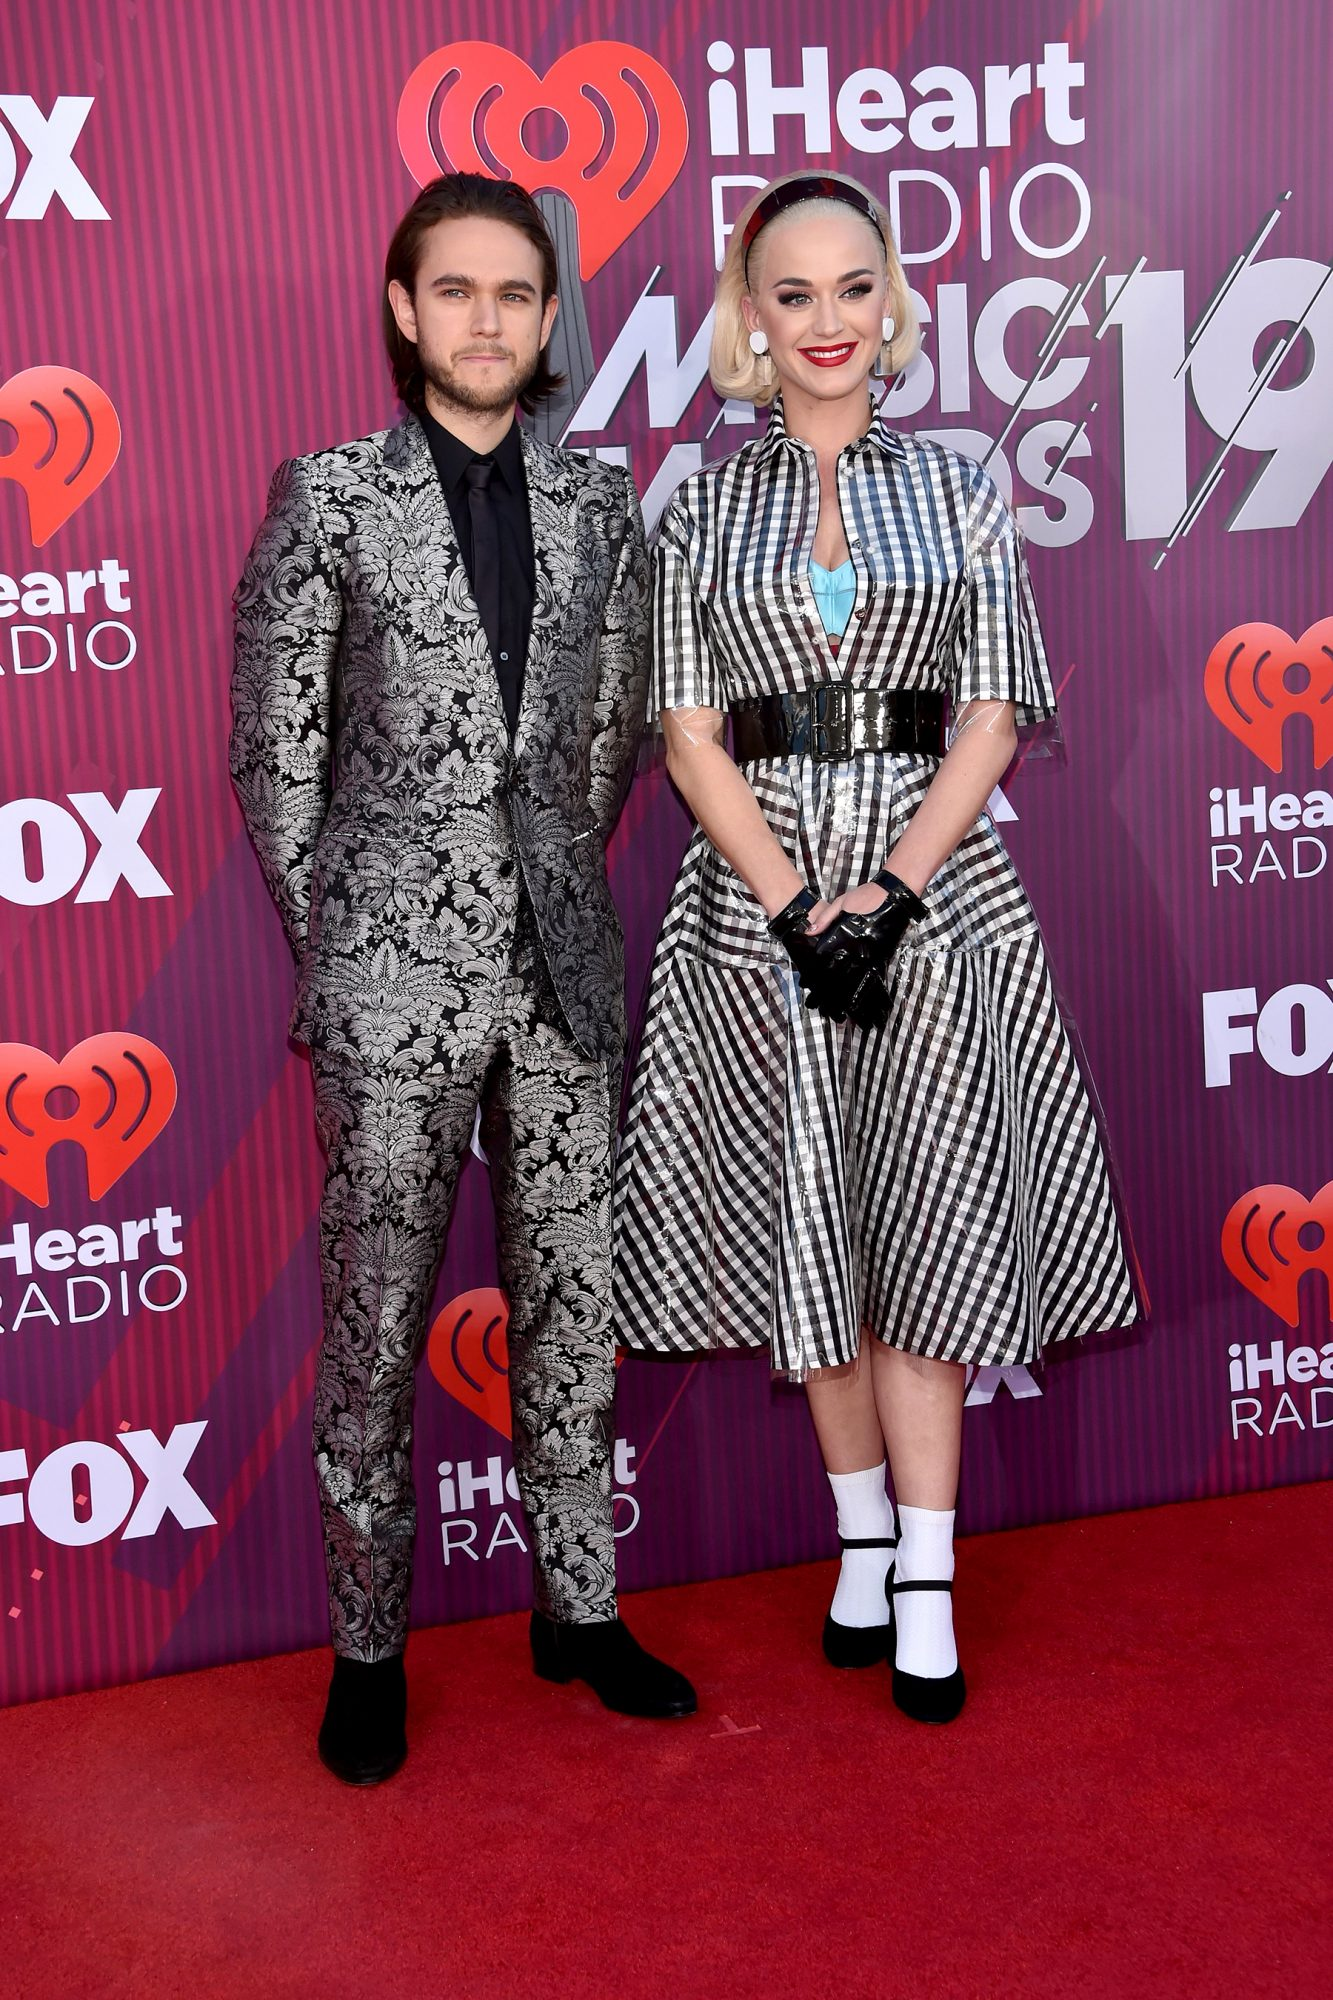 US-ENTERTAINMENT-MUSIC-IHEART-RADIO-AWARDS